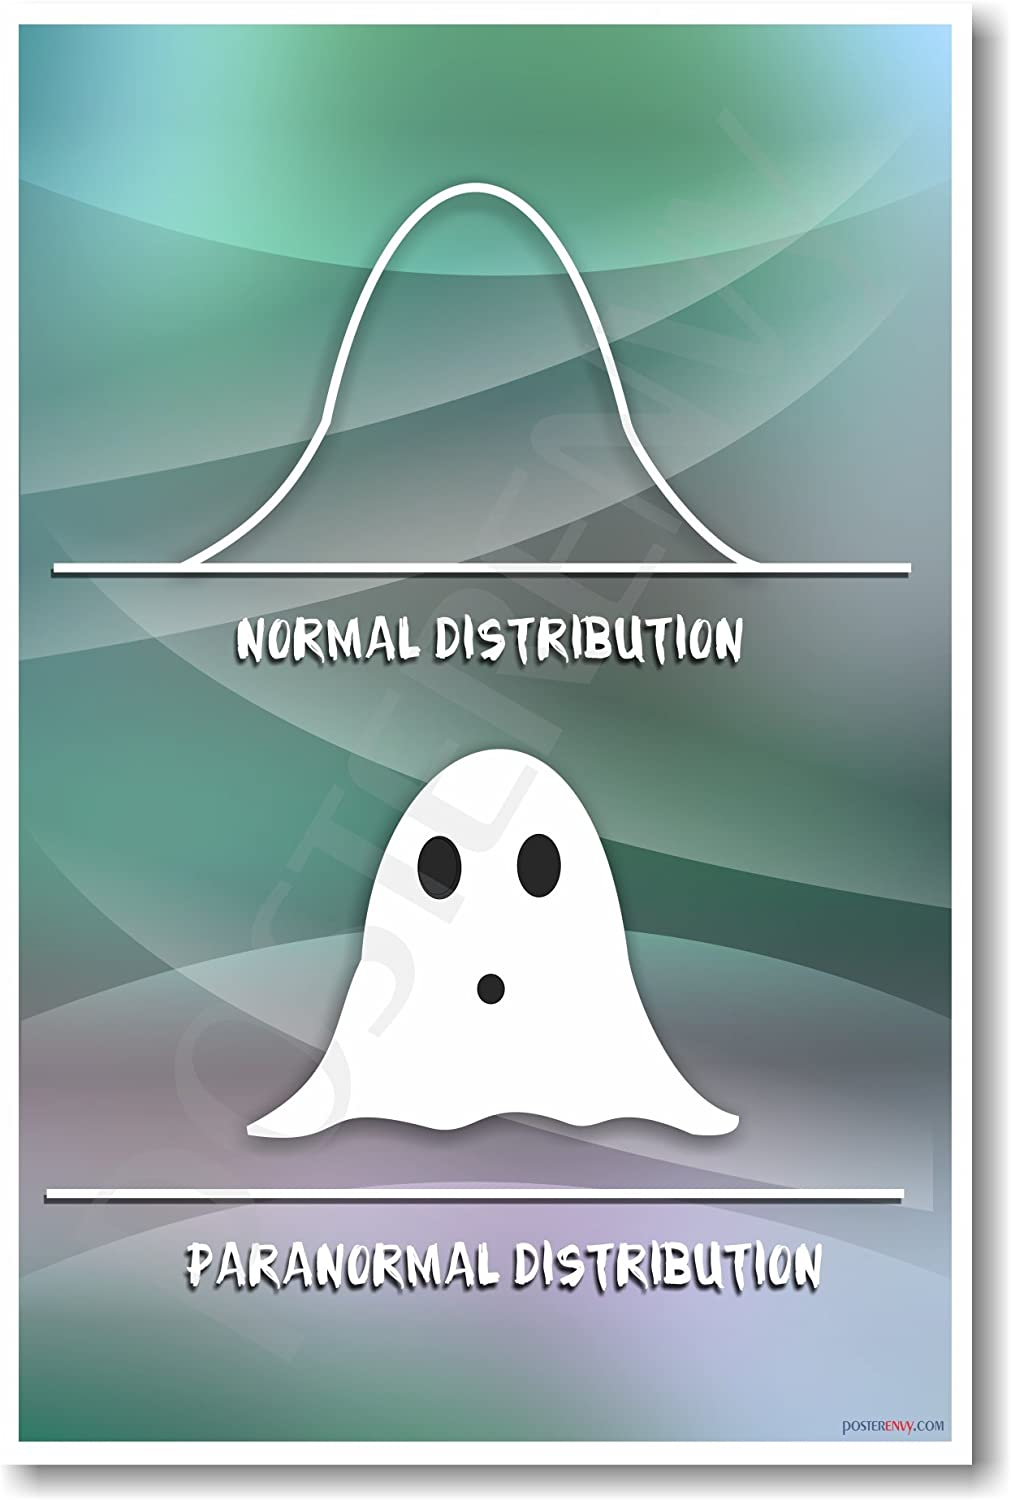 Amazon Com Paranormal Distribution New Humor Poster Office